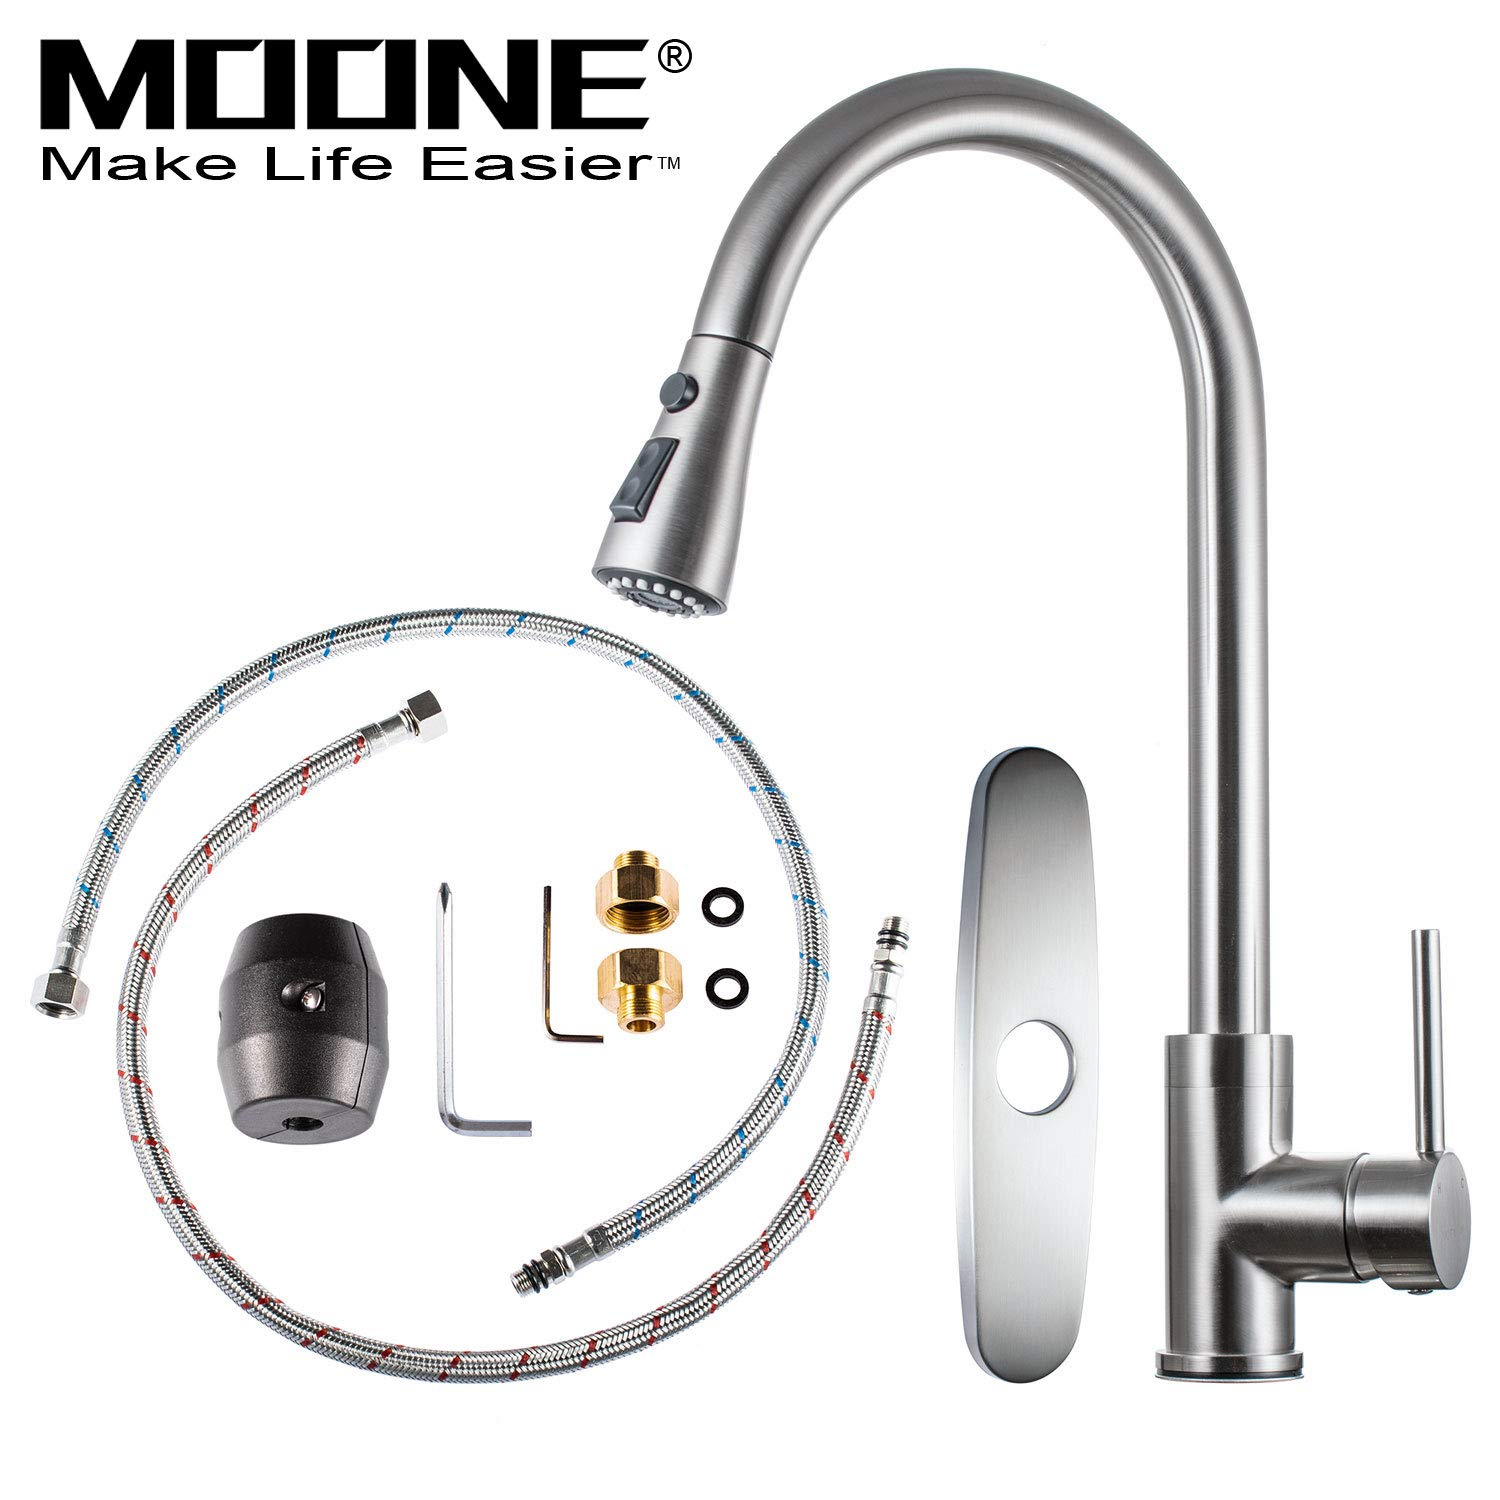 Moone Commercial Single Handle Kitchen Faucet Pull Down Sprayer Brass Body Pull Out Spray Kitchen Sink Faucets Stainless Steel Brushed Nickel by Moone (Image #2)